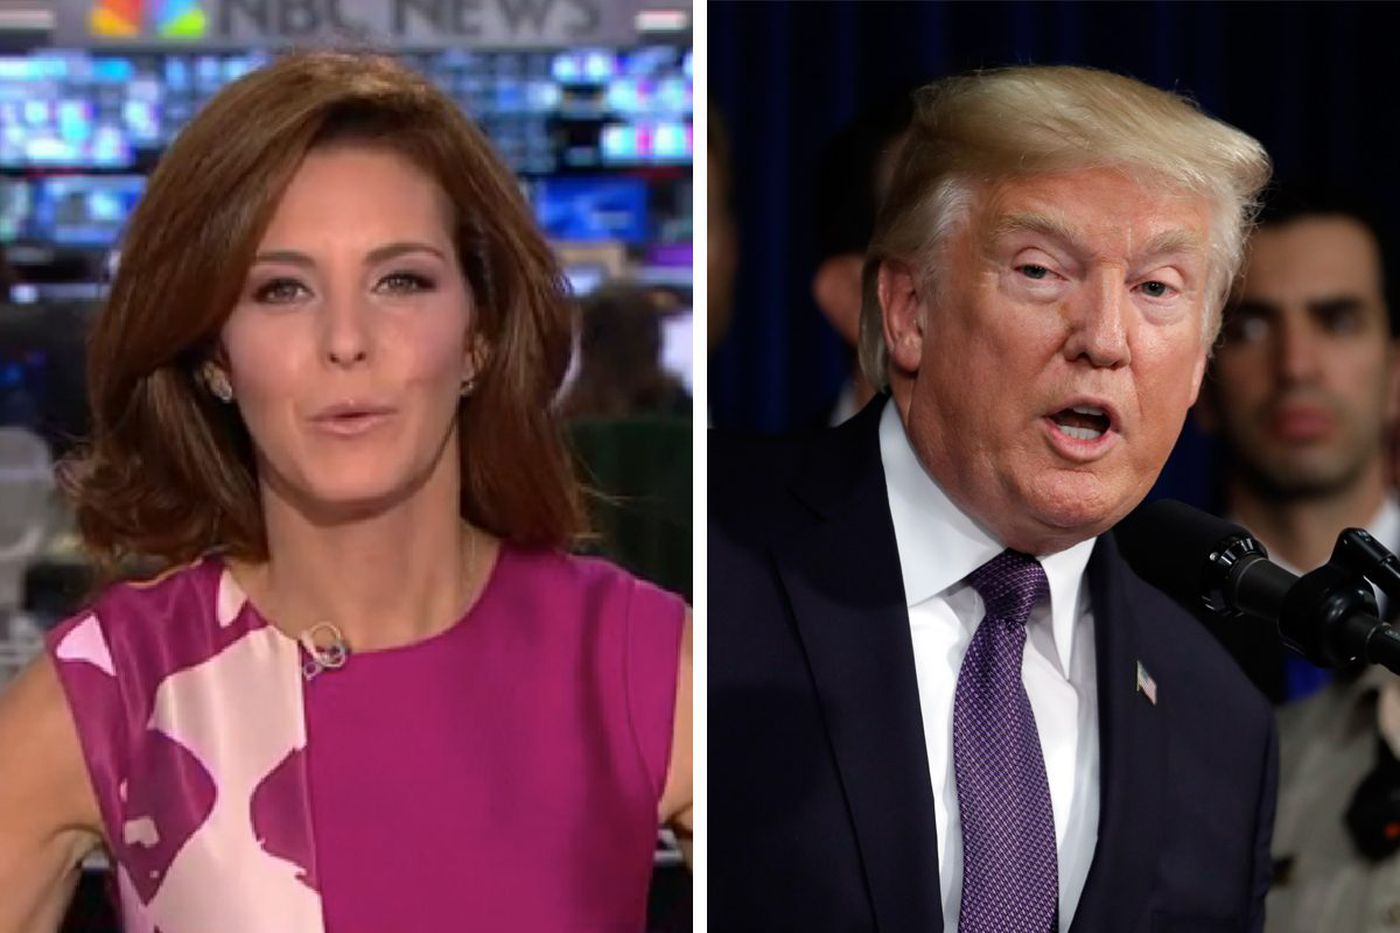 Trump continues attack on 'moron' report, but NBC reporters are fighting back